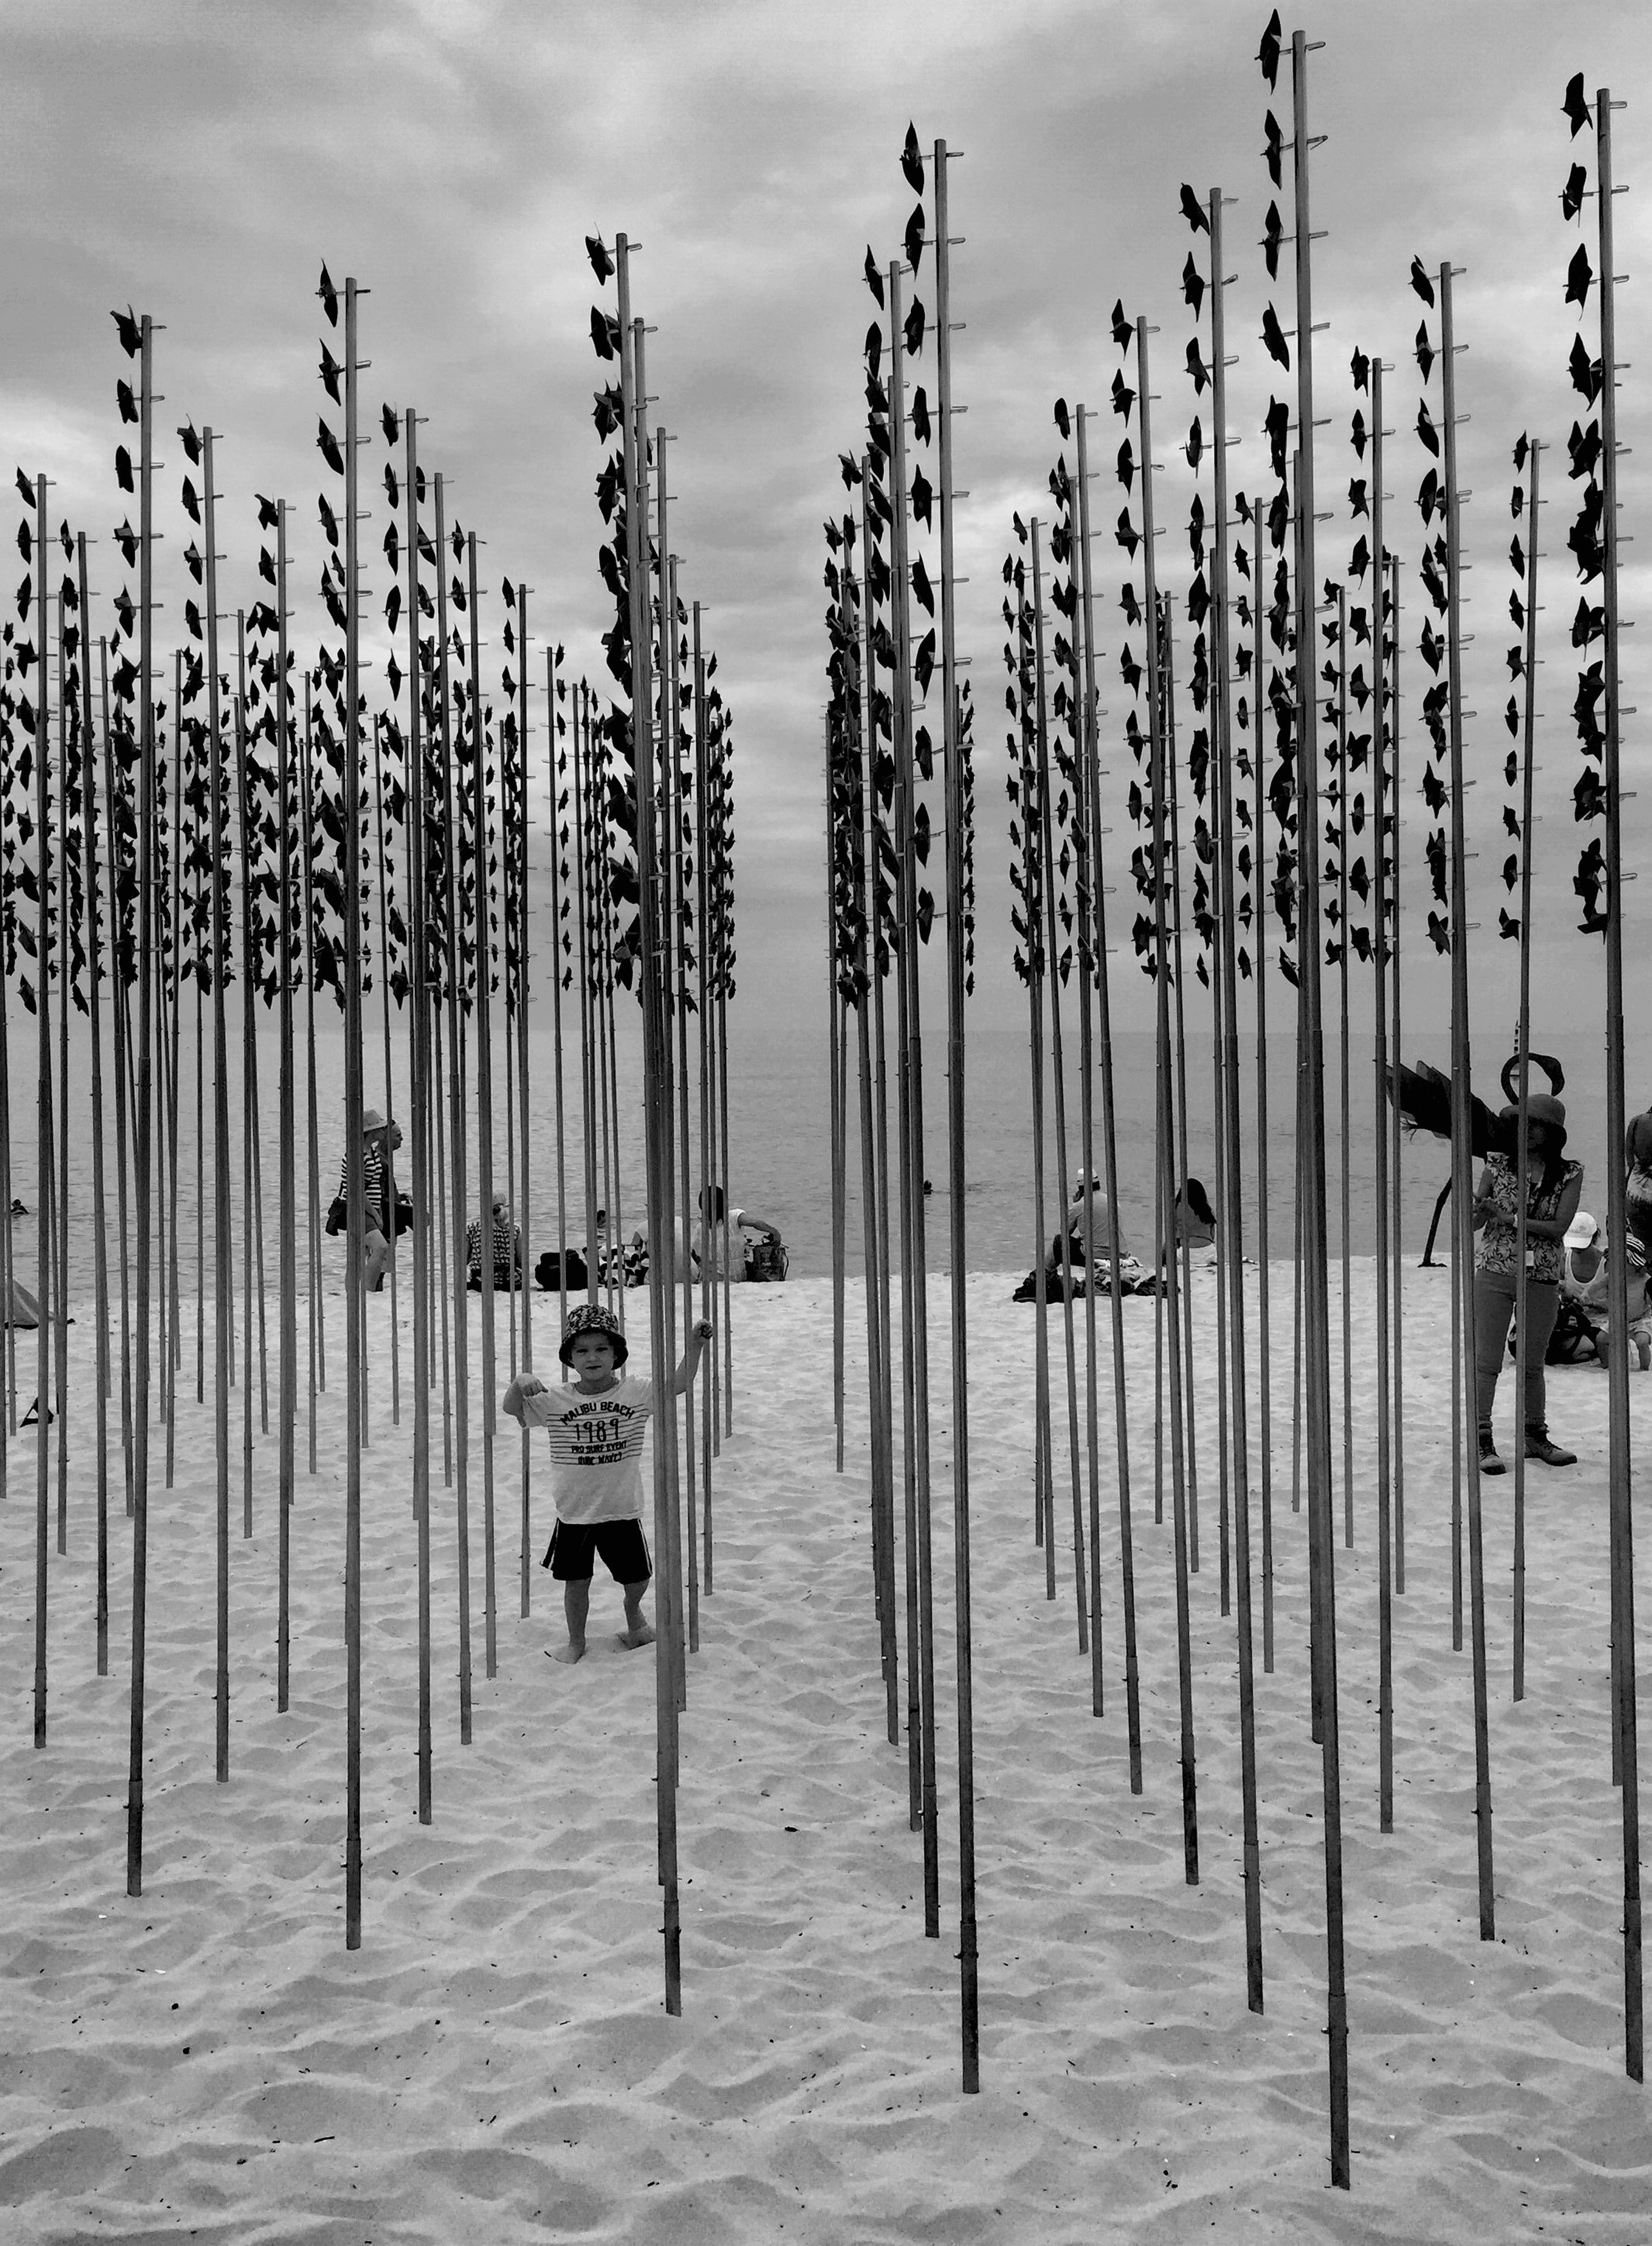 large group of objects, in a row, sky, abundance, arrangement, side by side, group of objects, beach, order, variation, hanging, day, no people, wooden post, outdoors, pole, repetition, sand, fence, wood - material